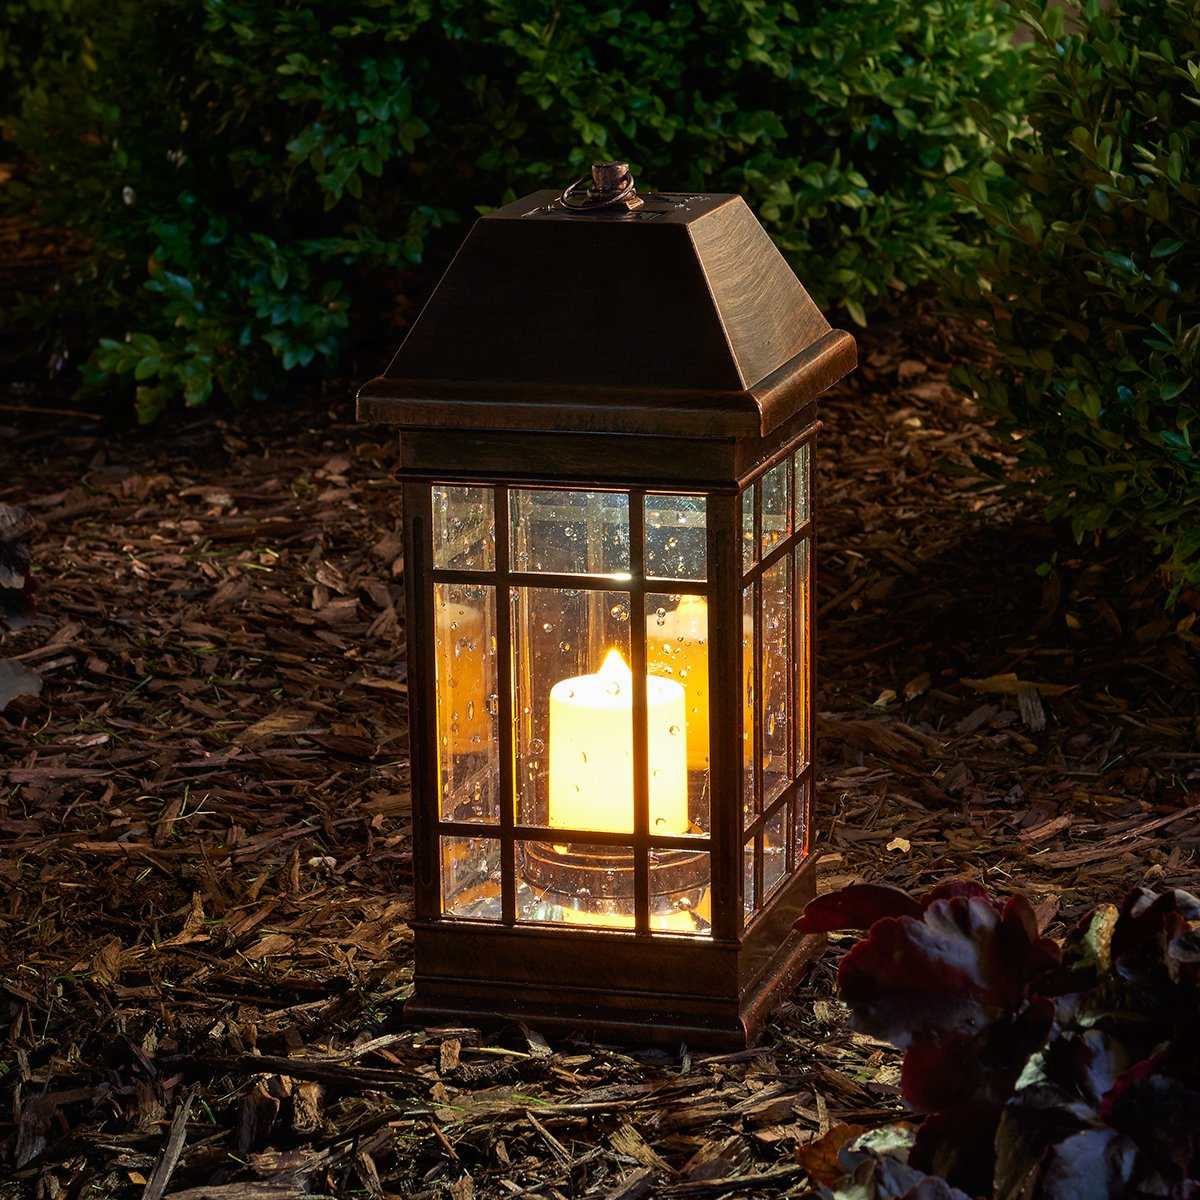 outdoor candle lighting.  lighting ii solar mission lantern illuminated by 2 high performance warm white  leds in the top and one amber led in the pillar candle  outdoor post lights for lighting